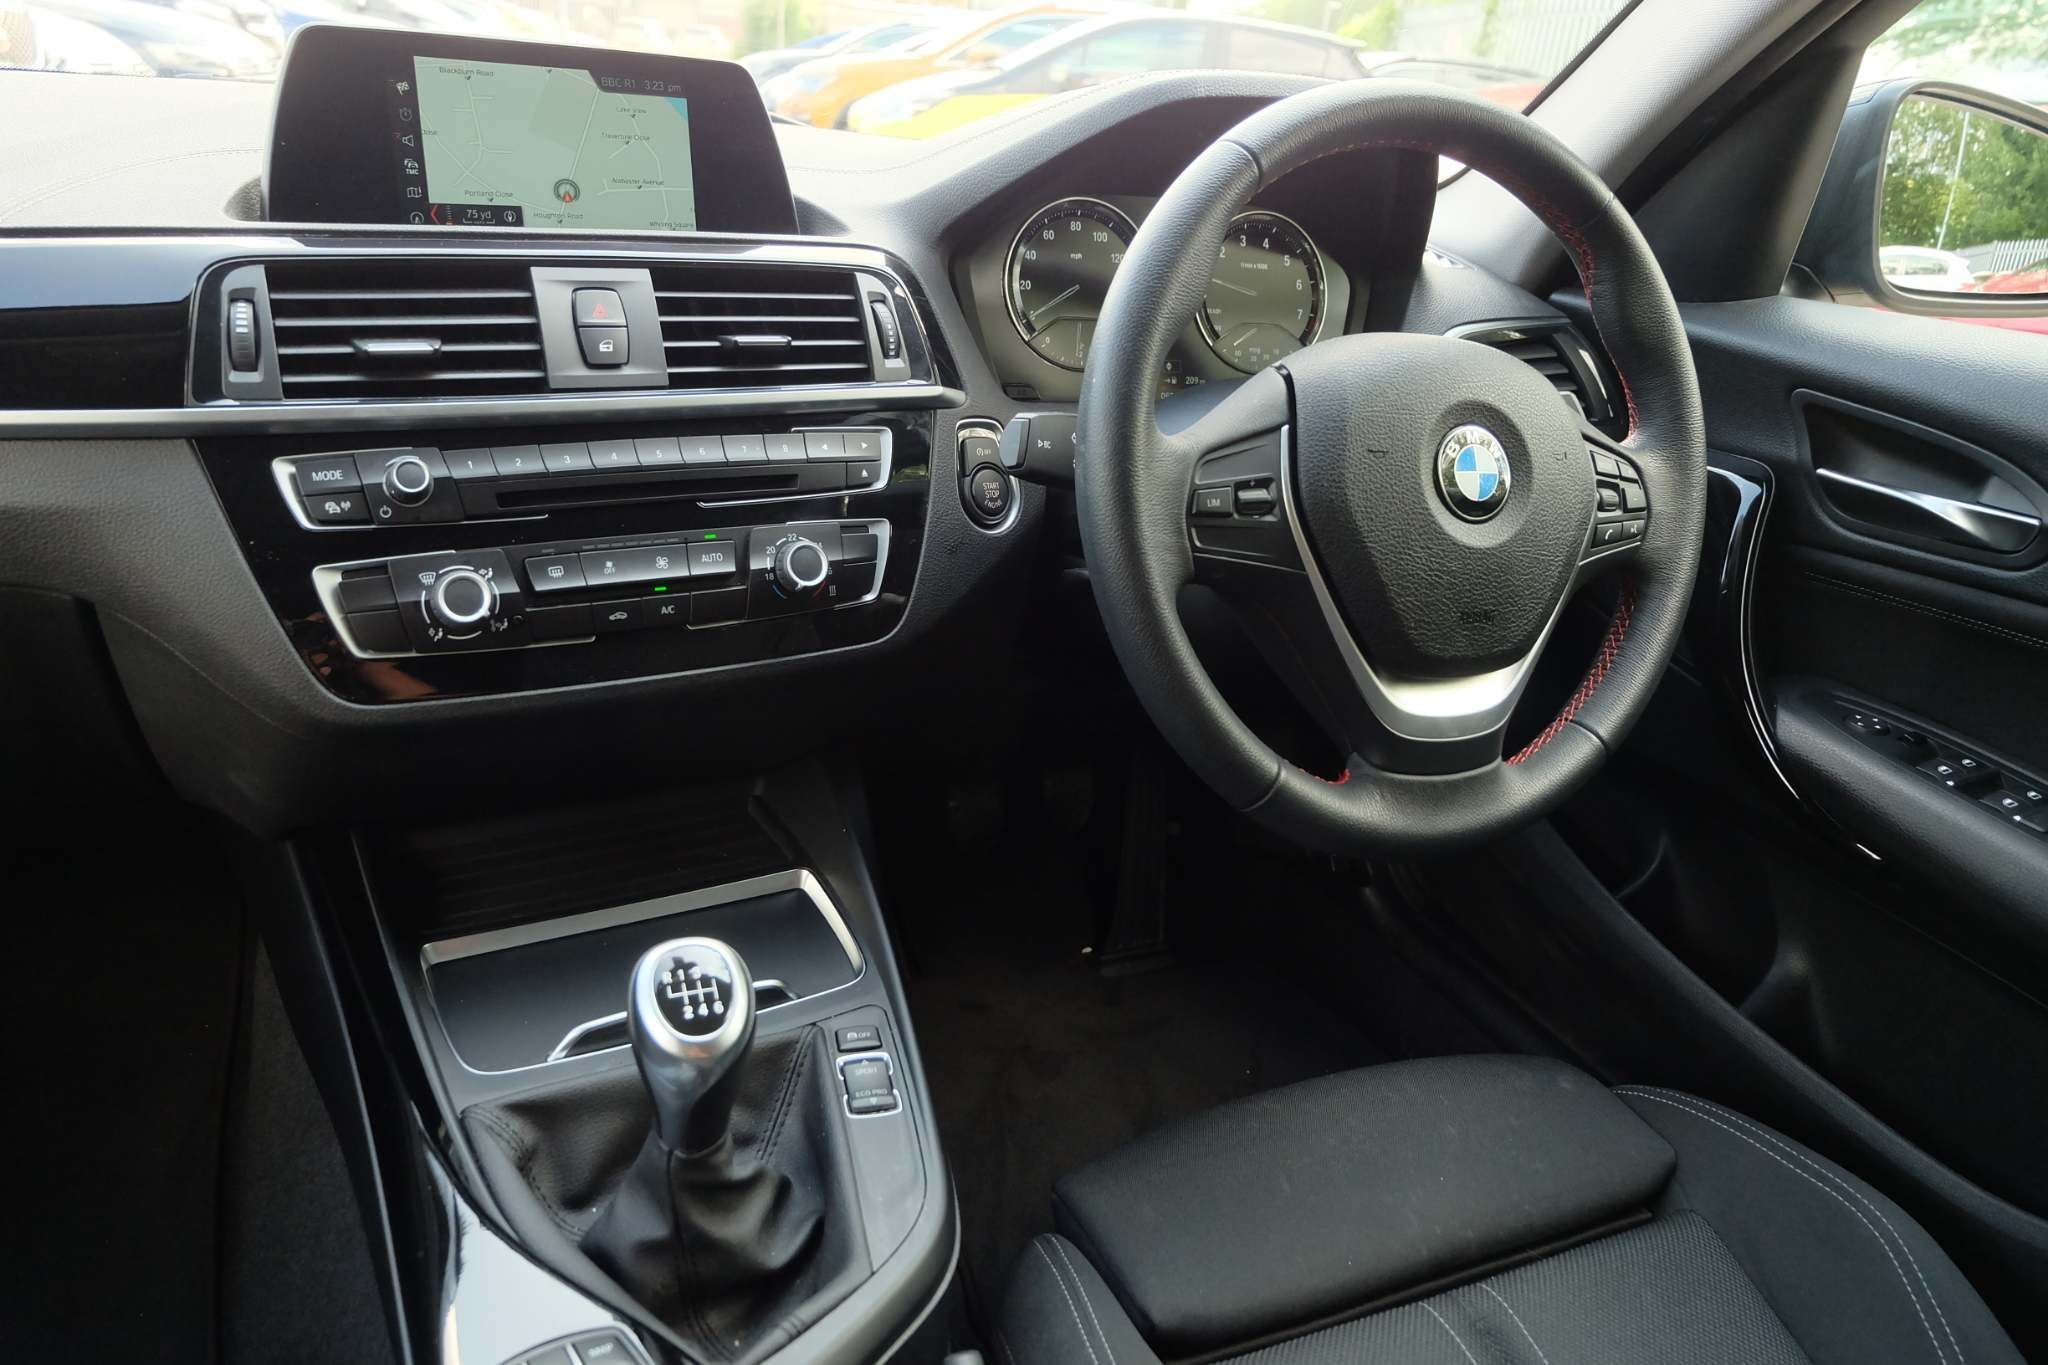 Used BMW 1 Series 1.5 118i Gpf Sport Sports Hatch (s/s) 5dr